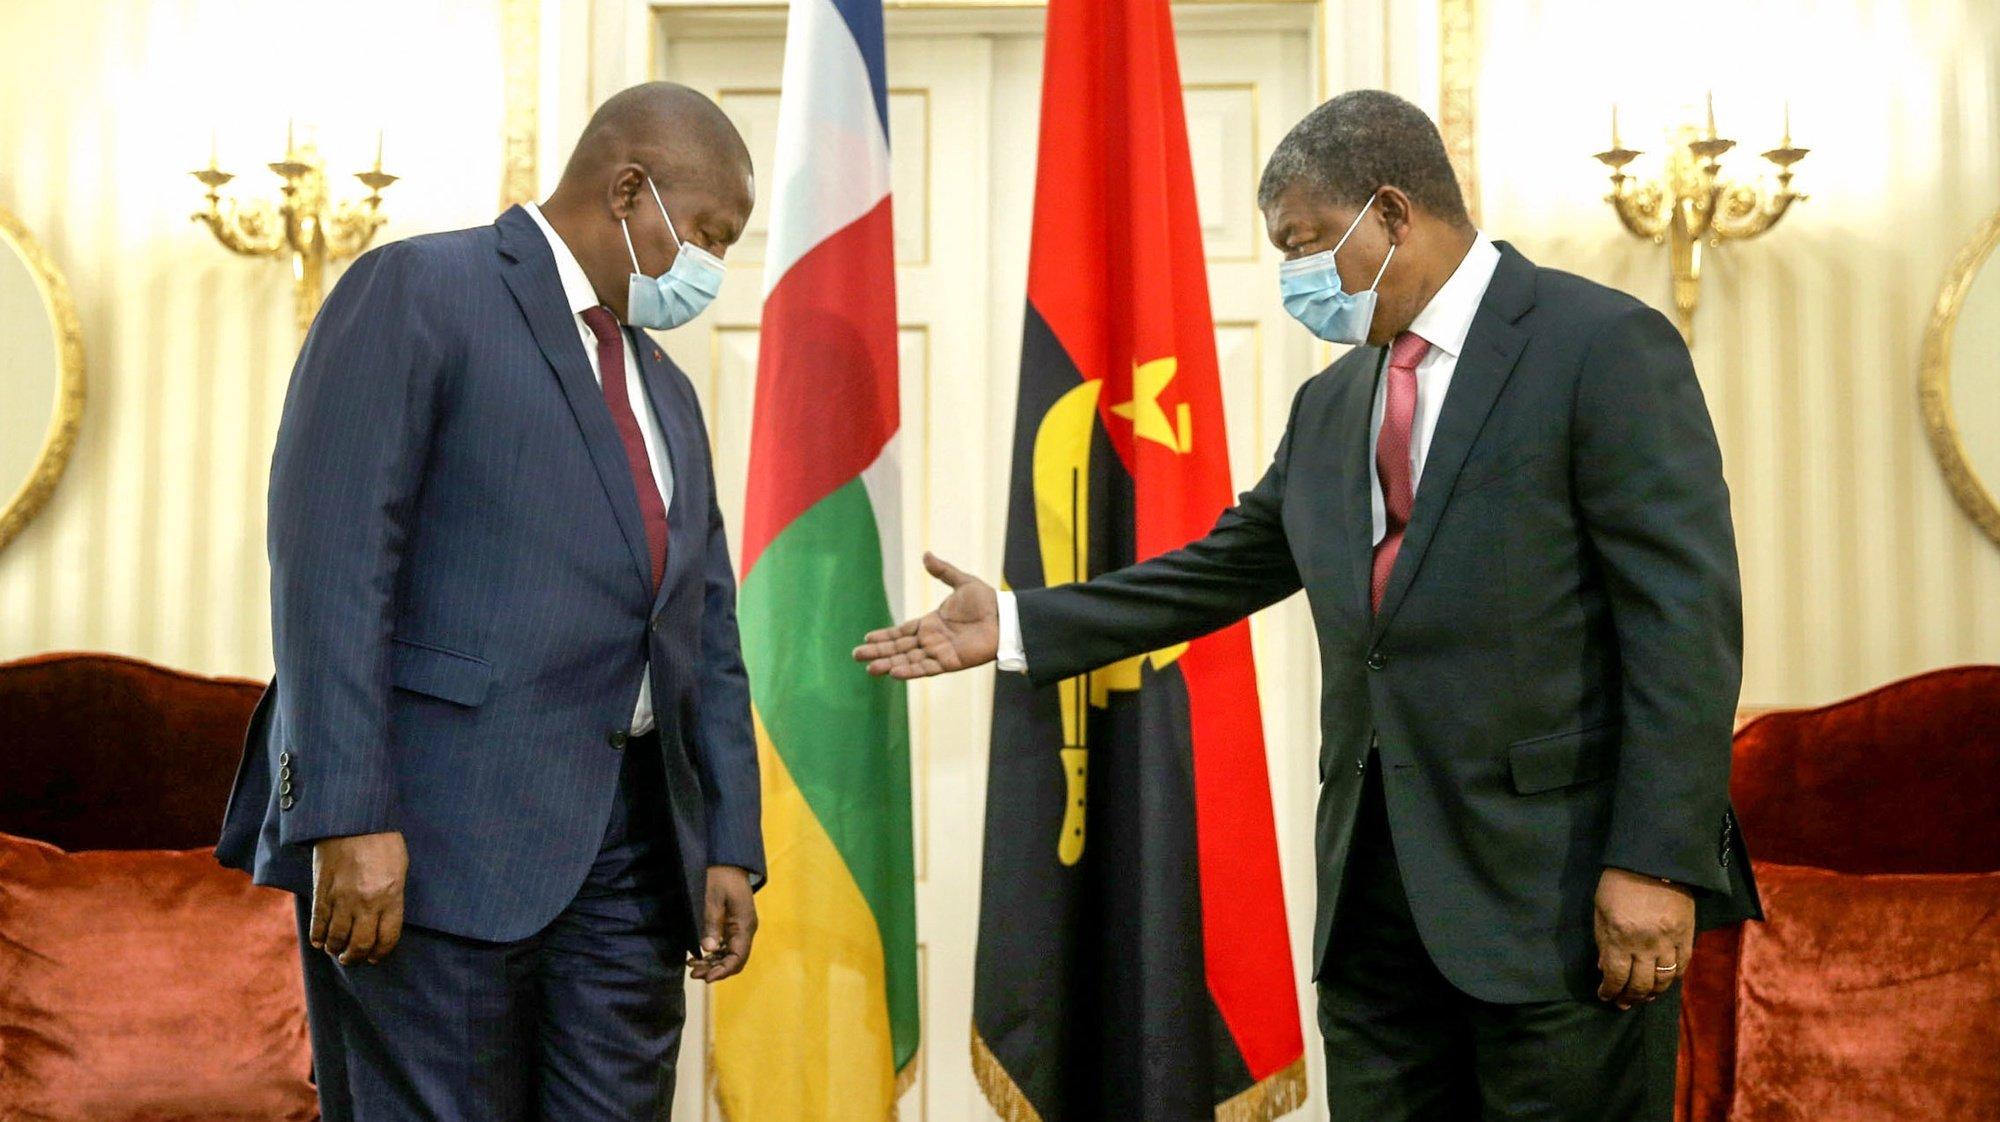 President of Central African Republic Faustin Archange Touadera  (L)  and Angola President João Lourenço (R)  poses for the photo during his visit to Angola, Luanda 26 May 2021.  AMPE ROGERIO / LUSA